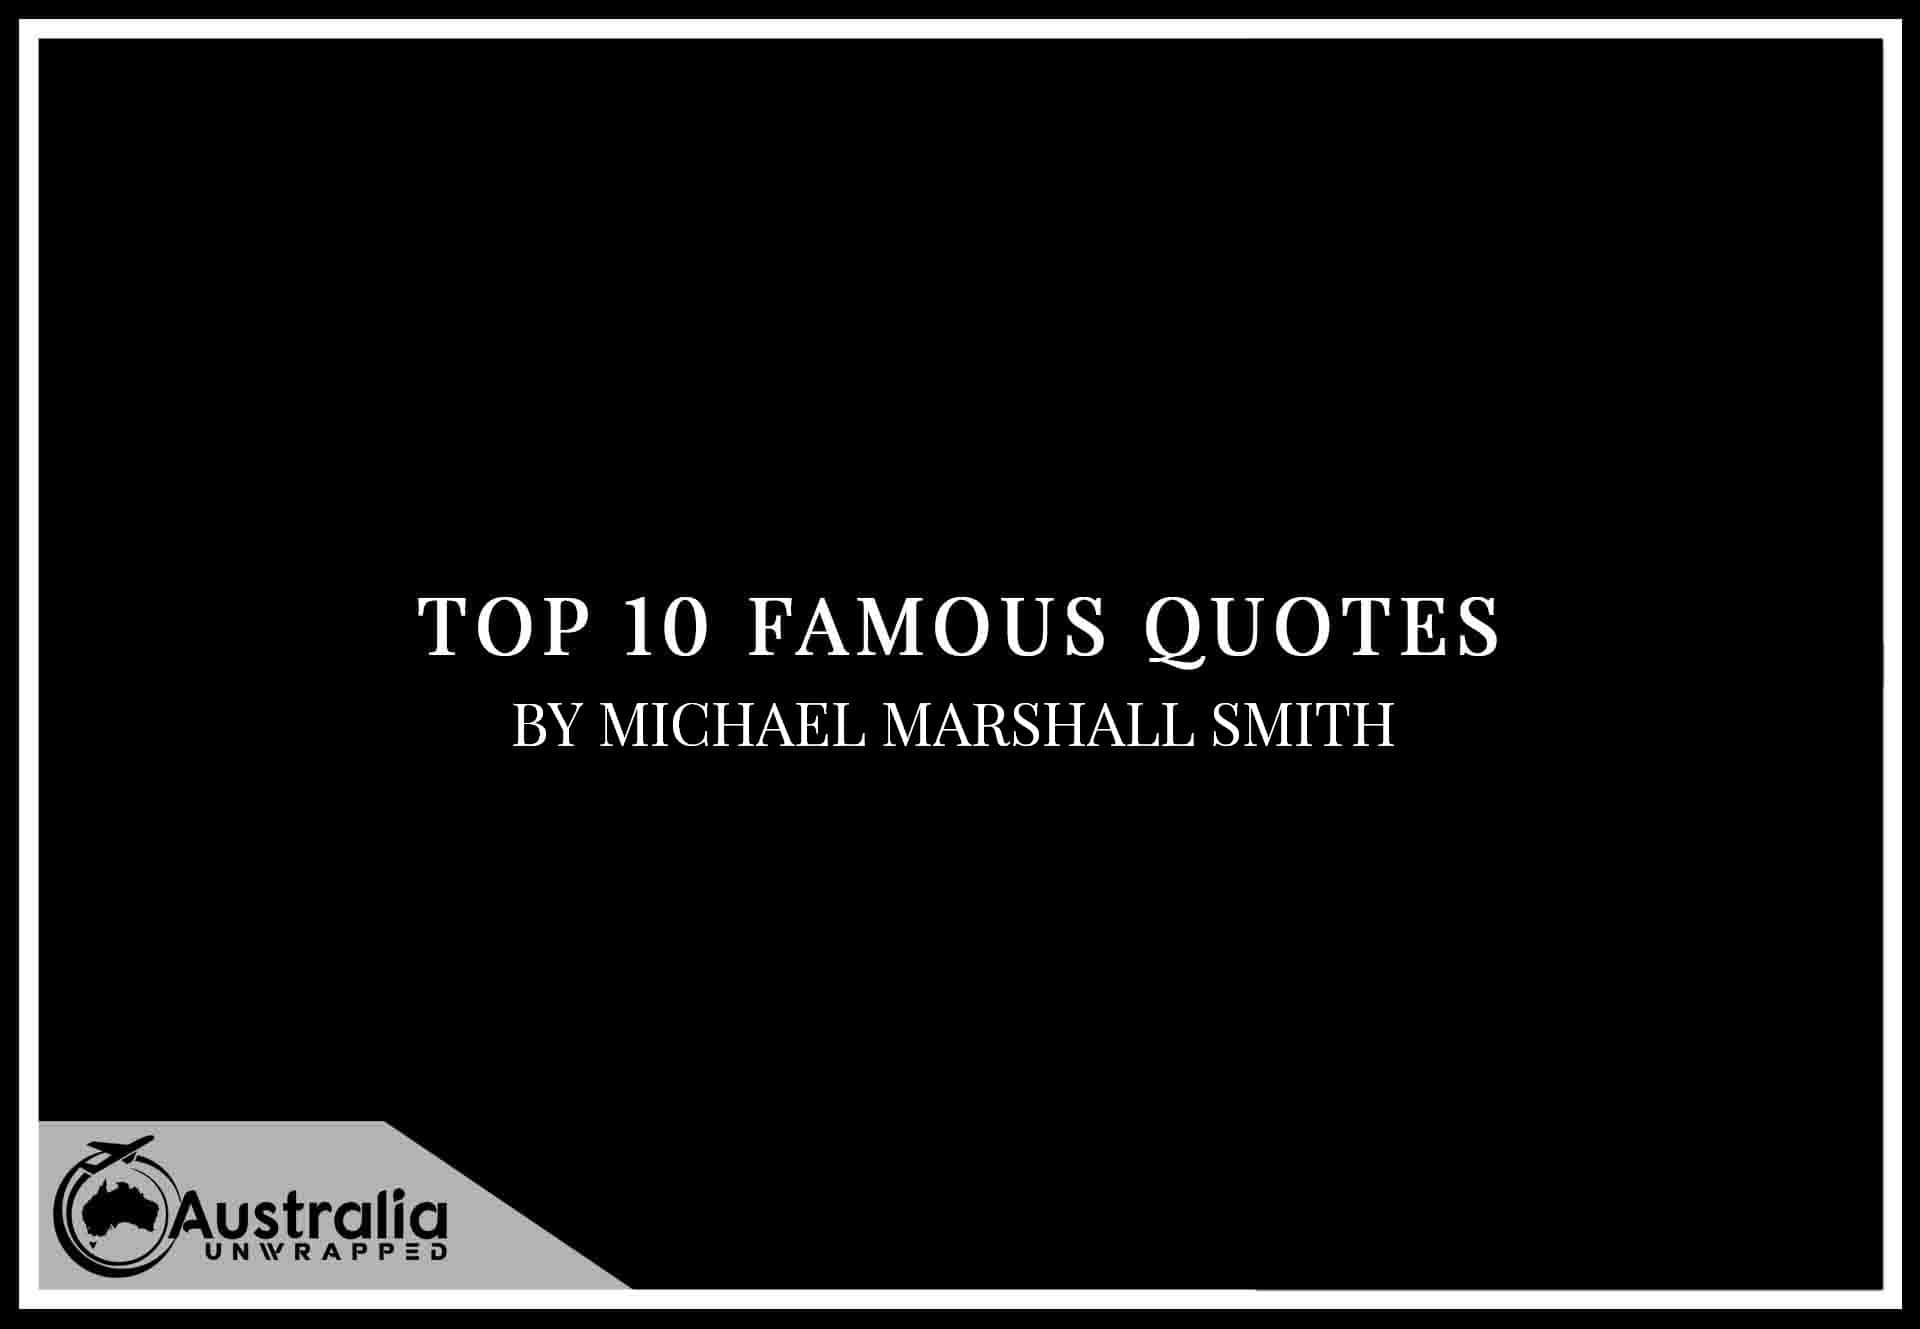 Top 10 Famous Quotes by Author Michael Marshall Smith